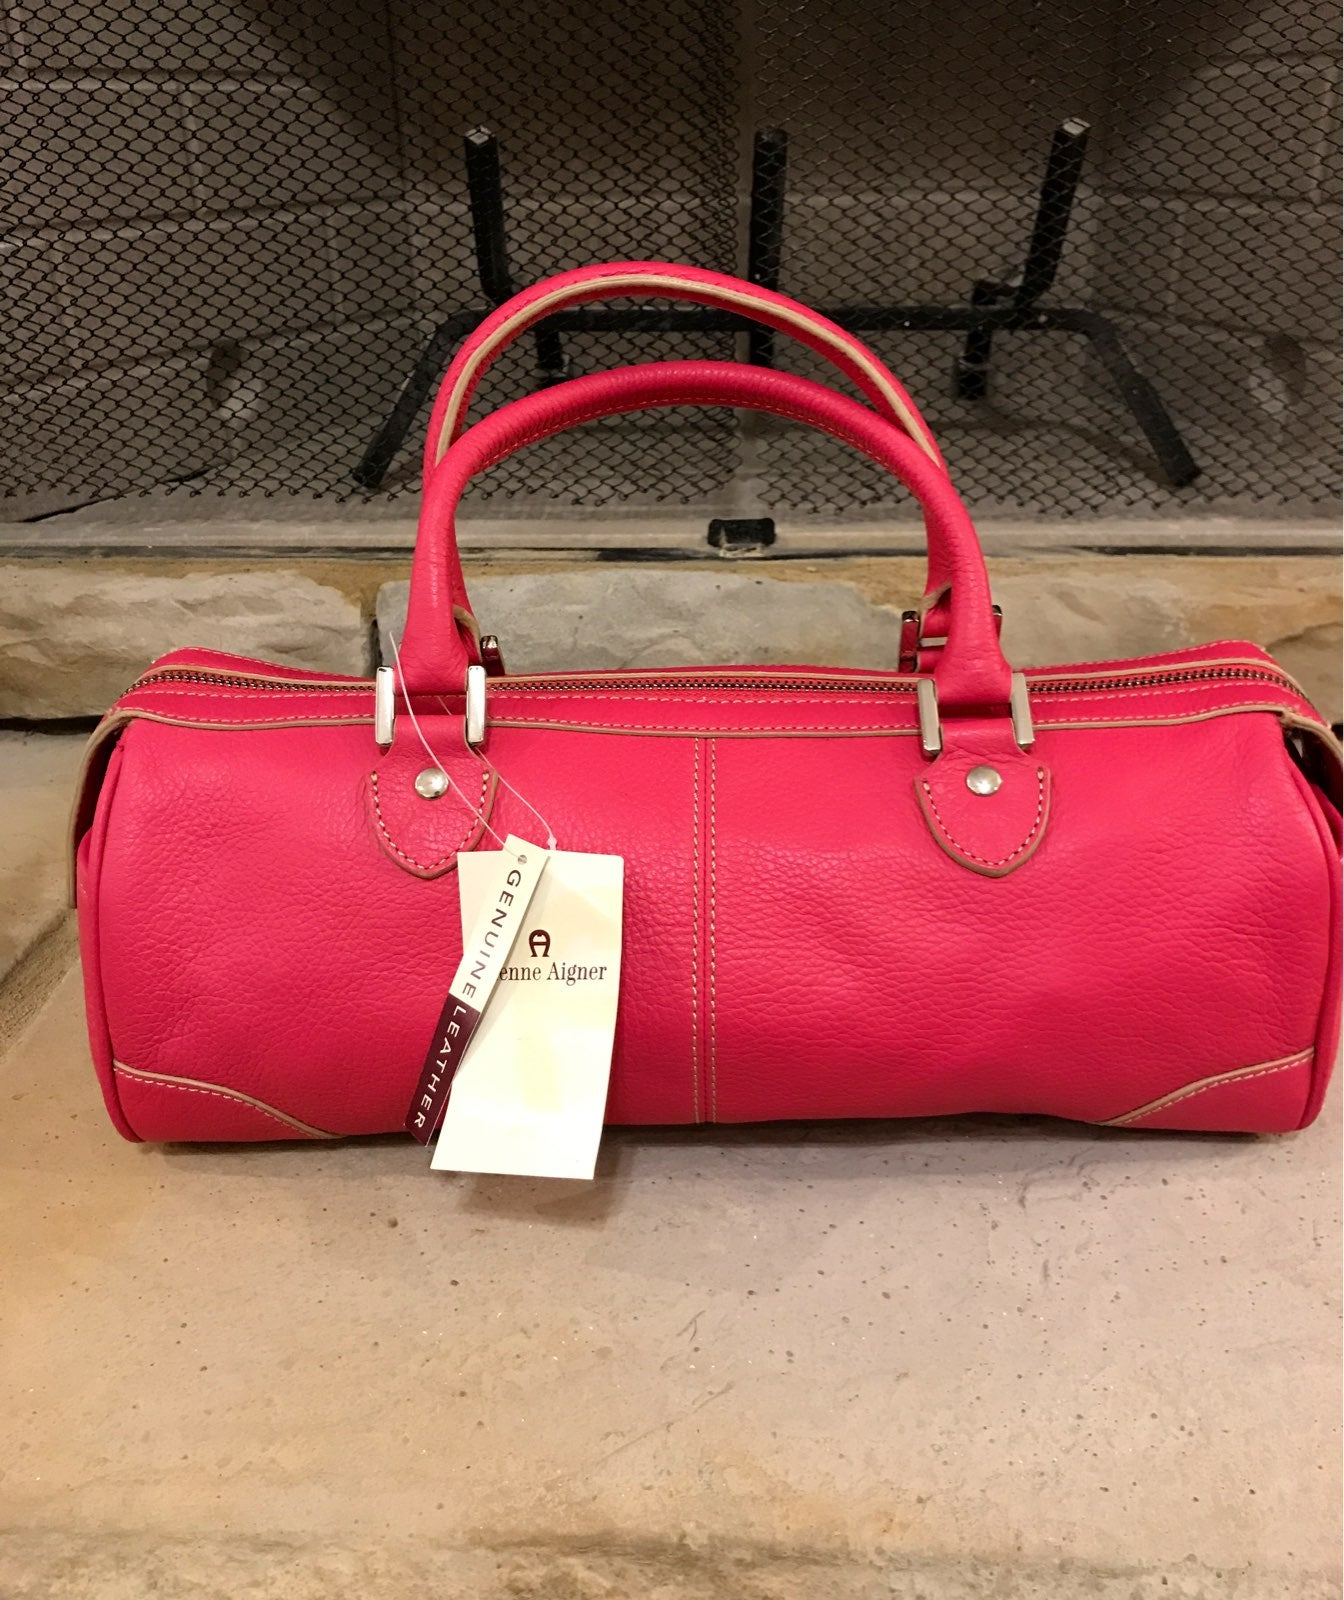 etienne aigner leather handbags and wall